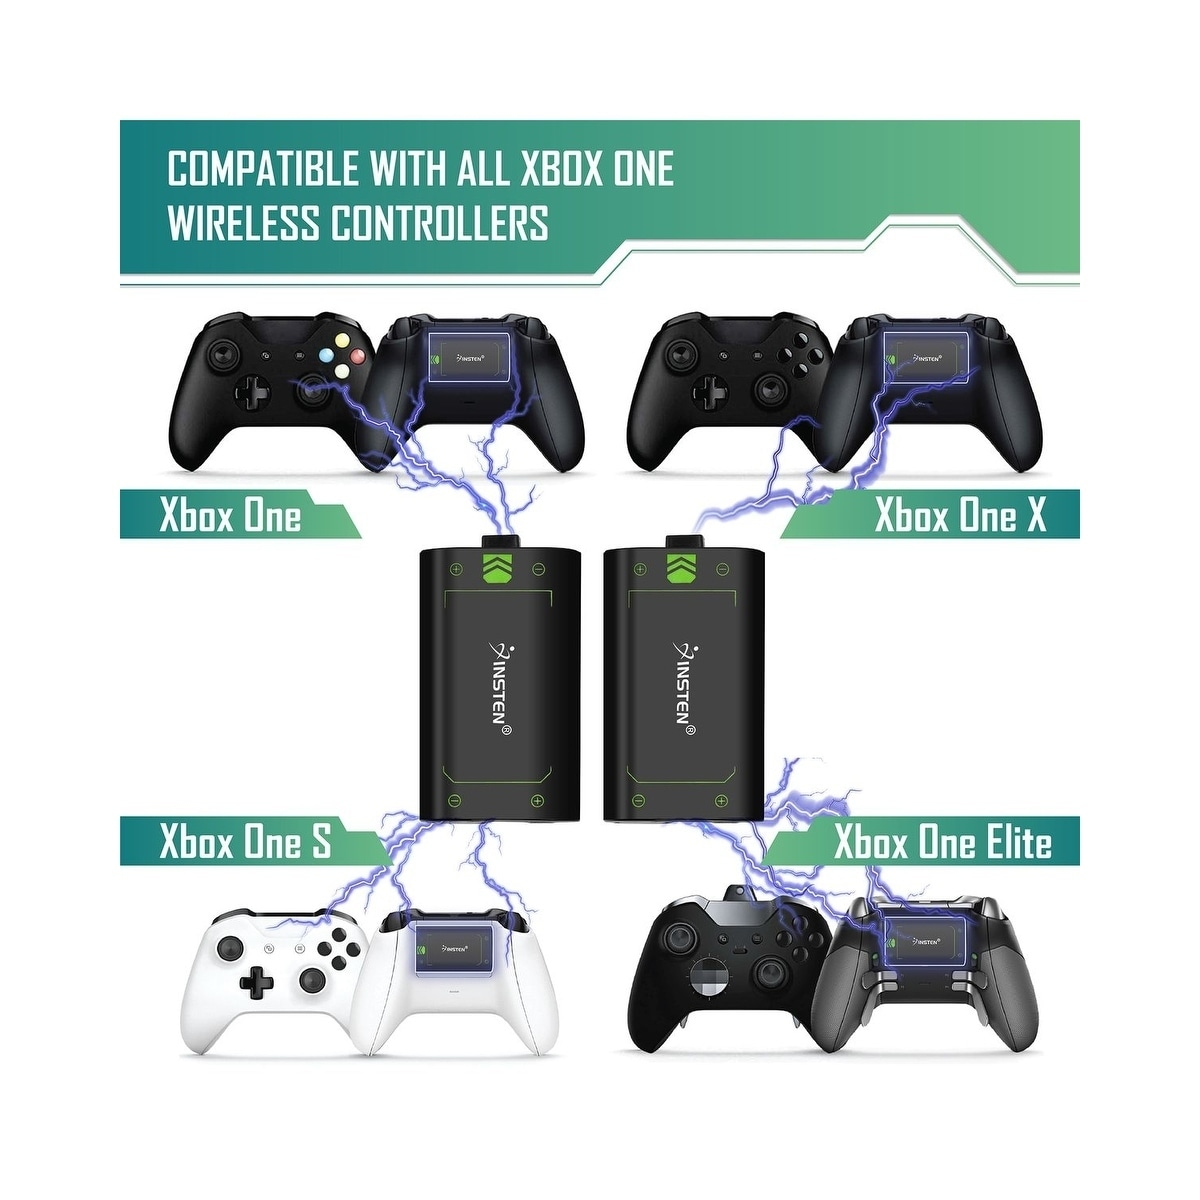 20795fba69a Shop Insten 2X 2500mAh Rechargeable Batteries and Charger Kit for Microsoft  Xbox One/ One S/ One X/ One Elite Wireless Controller - Free Shipping On  Orders ...